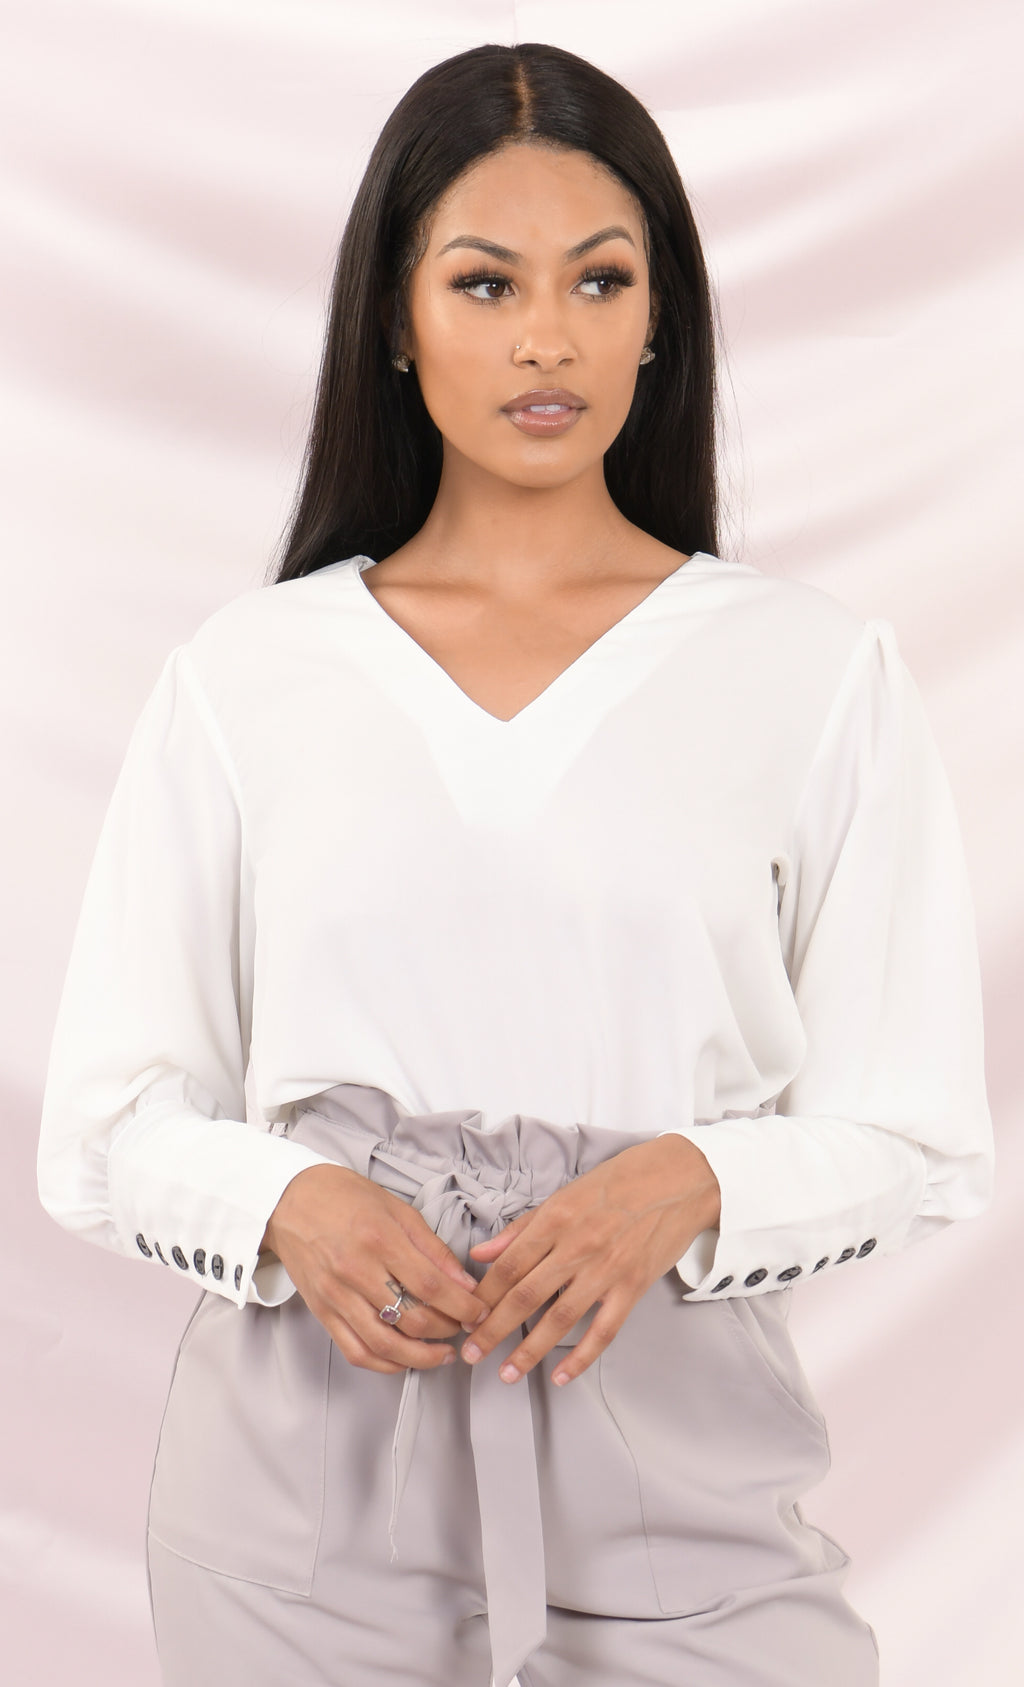 What I Need White Semi Sheer Black Button Long Bishop Cuff Puff Sleeve V Neck Button Back Blouse Top